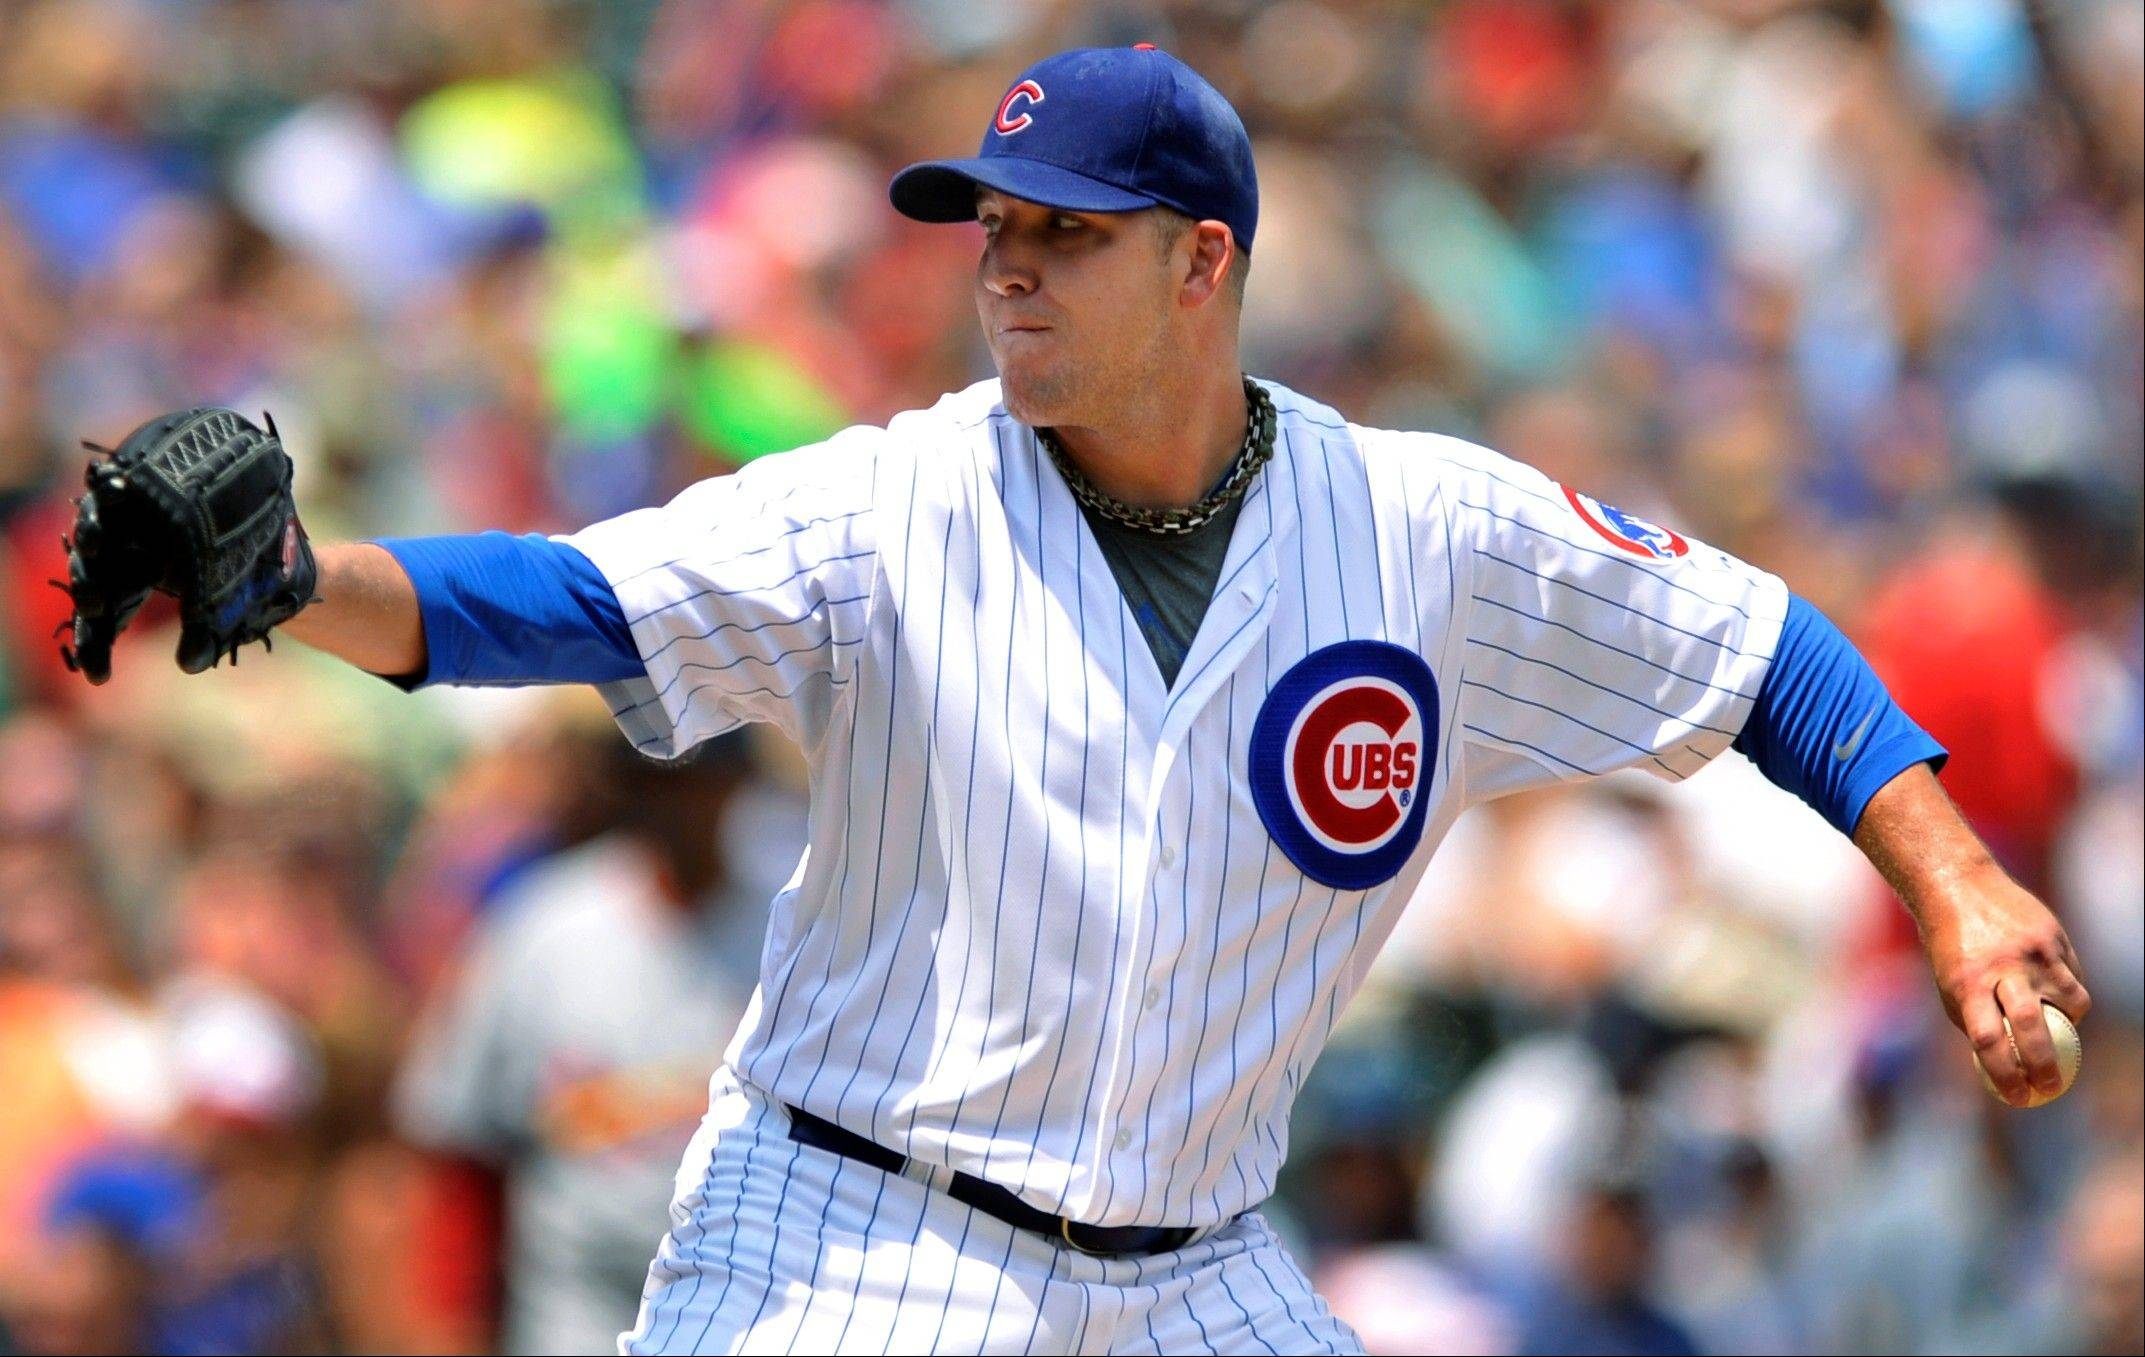 Cubs starter Paul Maholm delivers a pitch Sunday against the St. Louis Cardinals in the first inning at Wrigley Field.